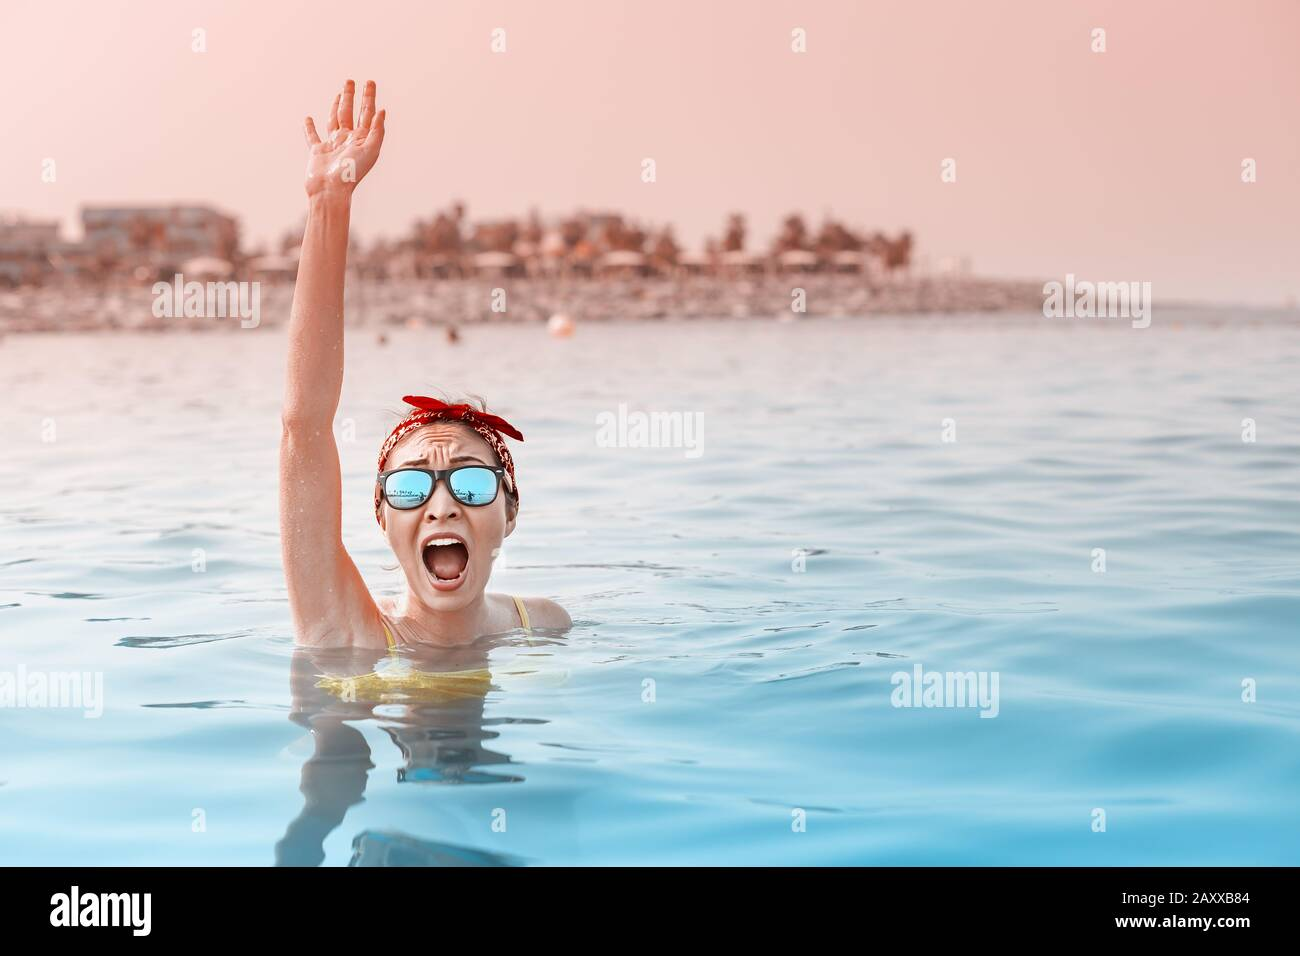 Desperate asian woman swimming in the sea and asking for help, shouts and raises her hand. Concept of accidents and drowning in water, lifeguard on th Stock Photo